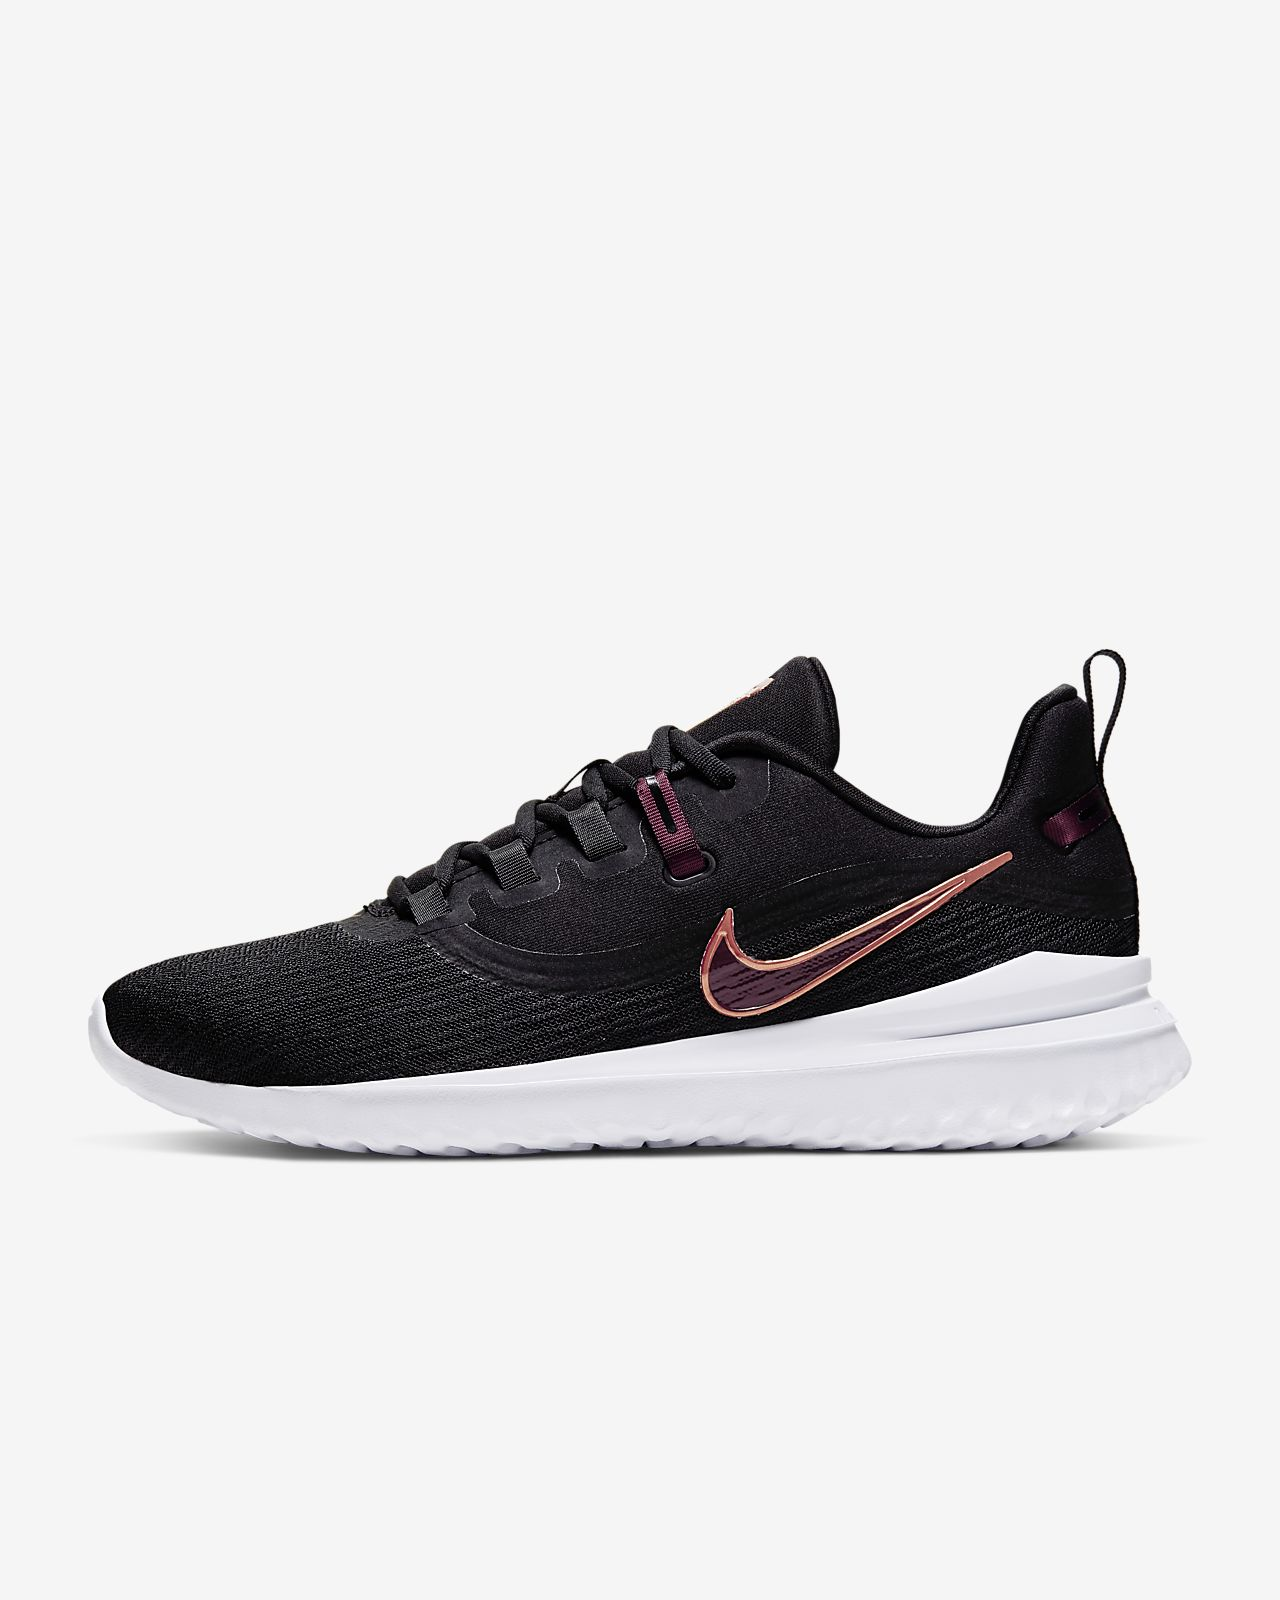 Nike Renew Rival 2 Women's Running Shoe